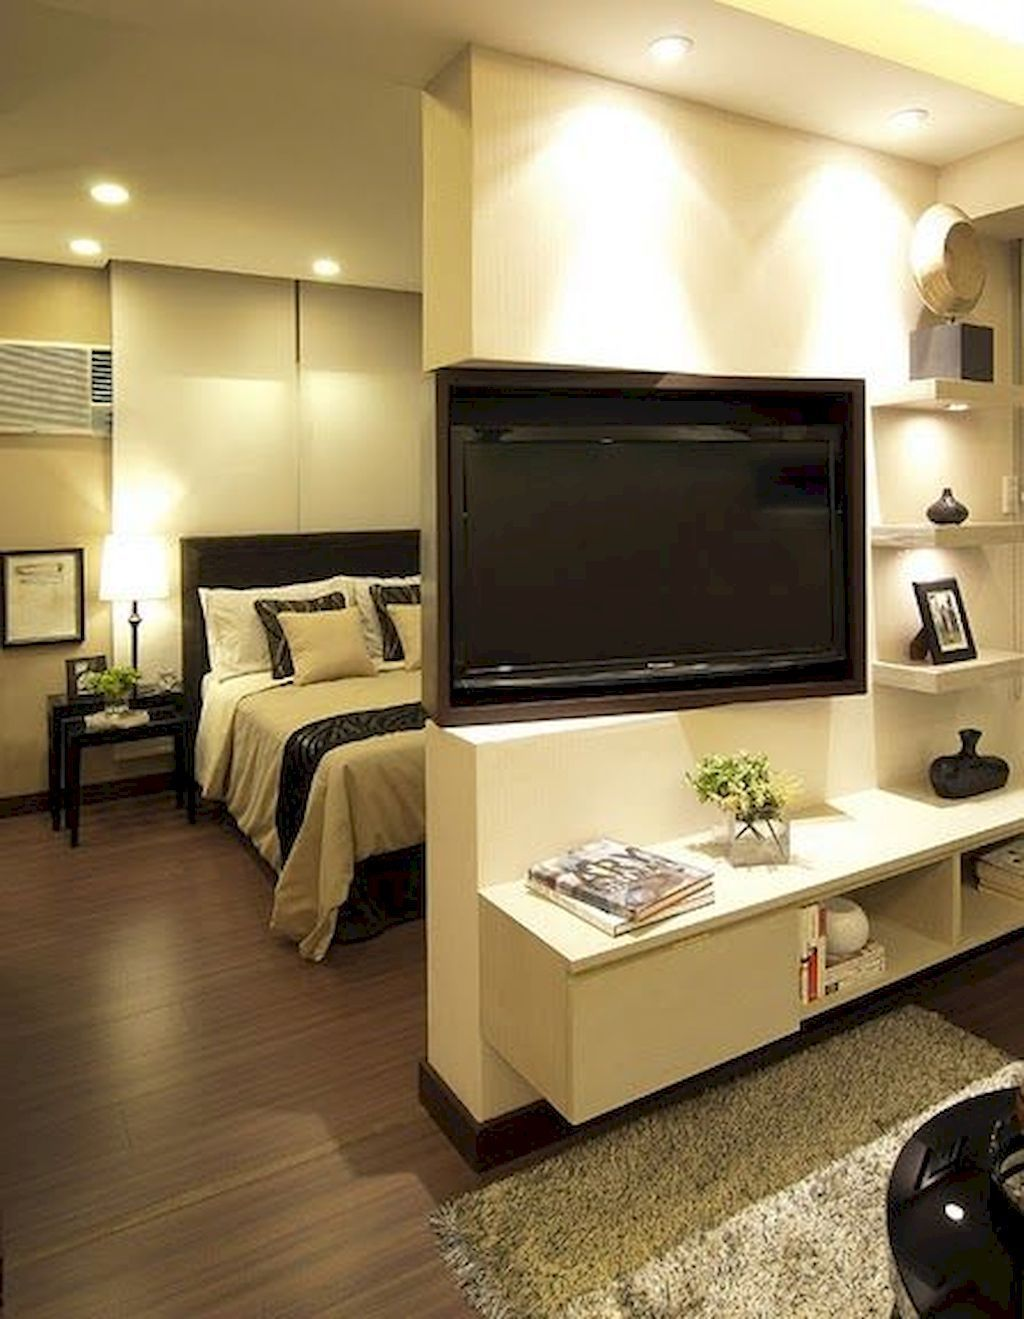 Basement Bedroom Ideas (Remodeling and Decorating Ideas on ...